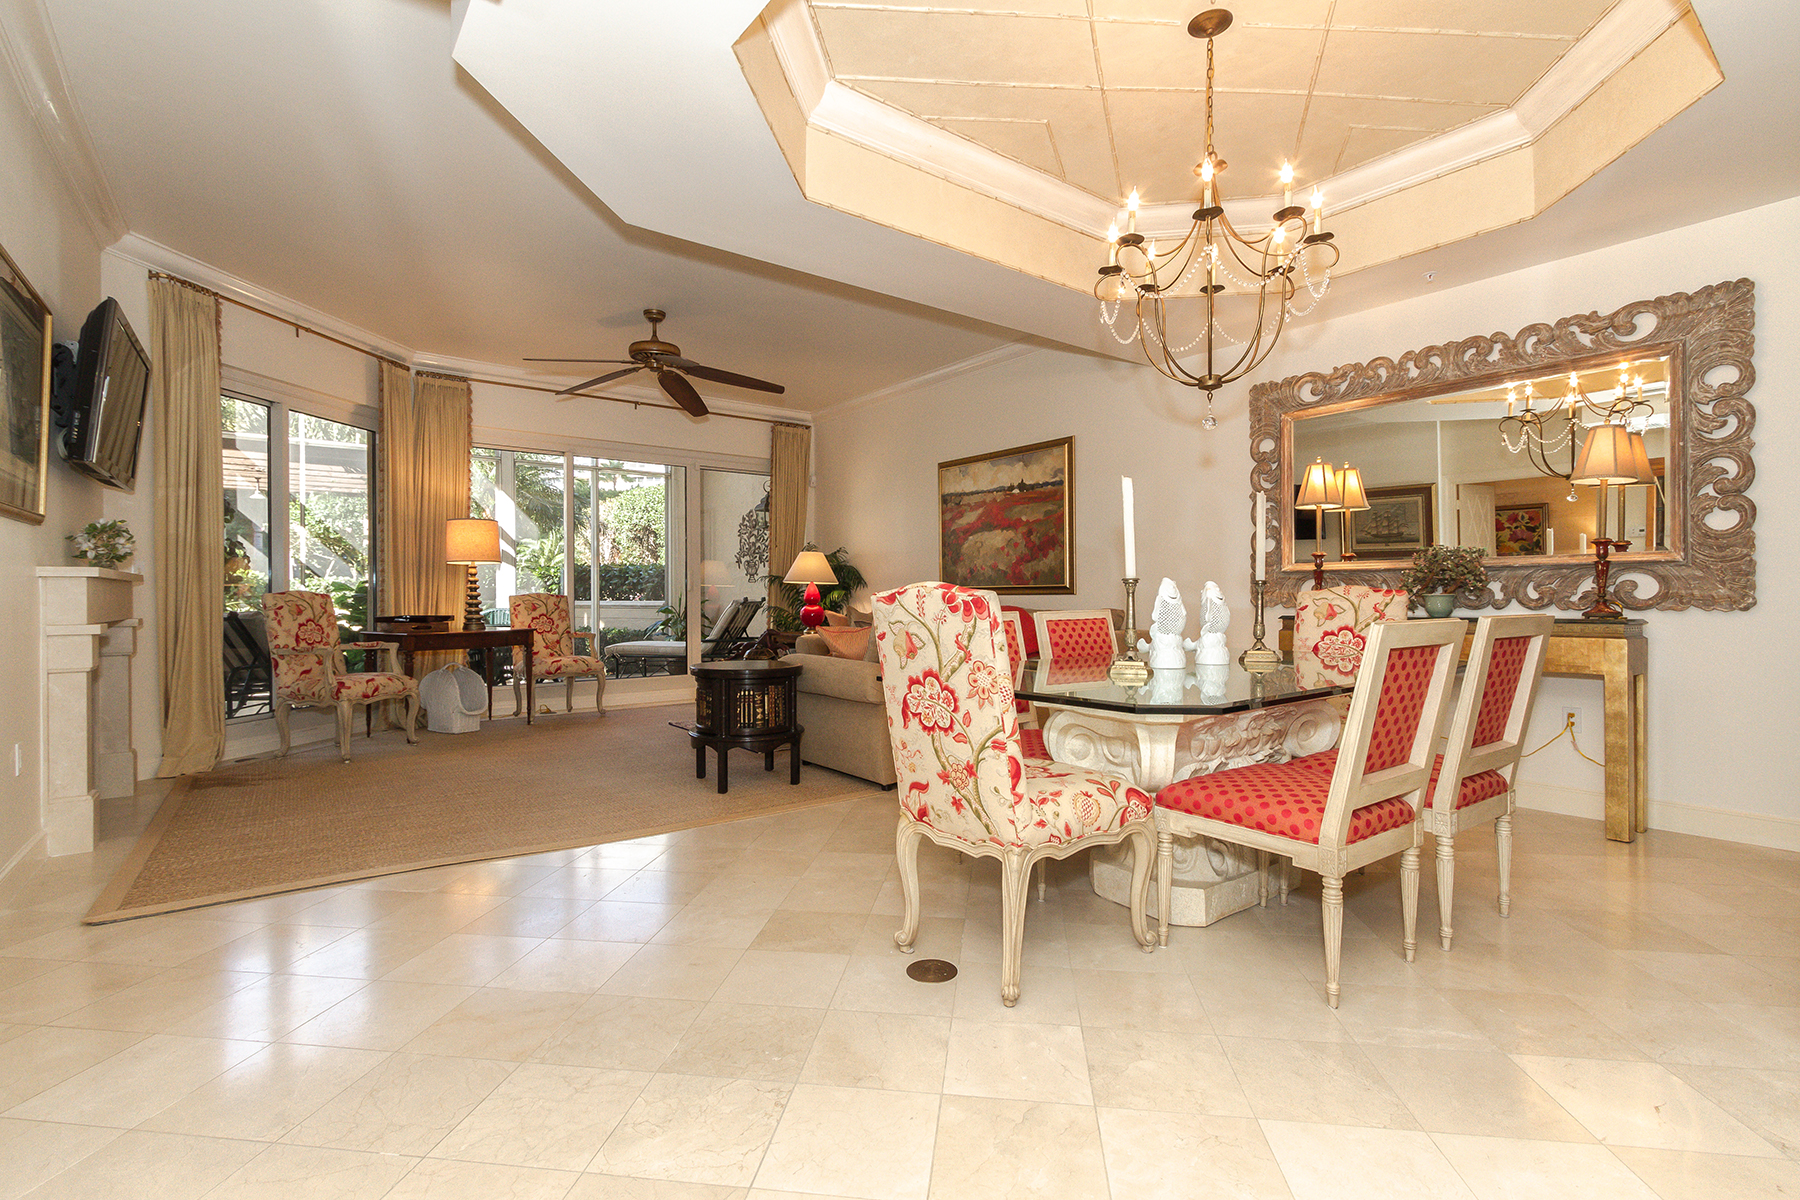 Single Family Home for Rent at PARK SHORE - BRITTANY 4021 Gulf Shore Blvd N V19, Naples, Florida 34103 United States